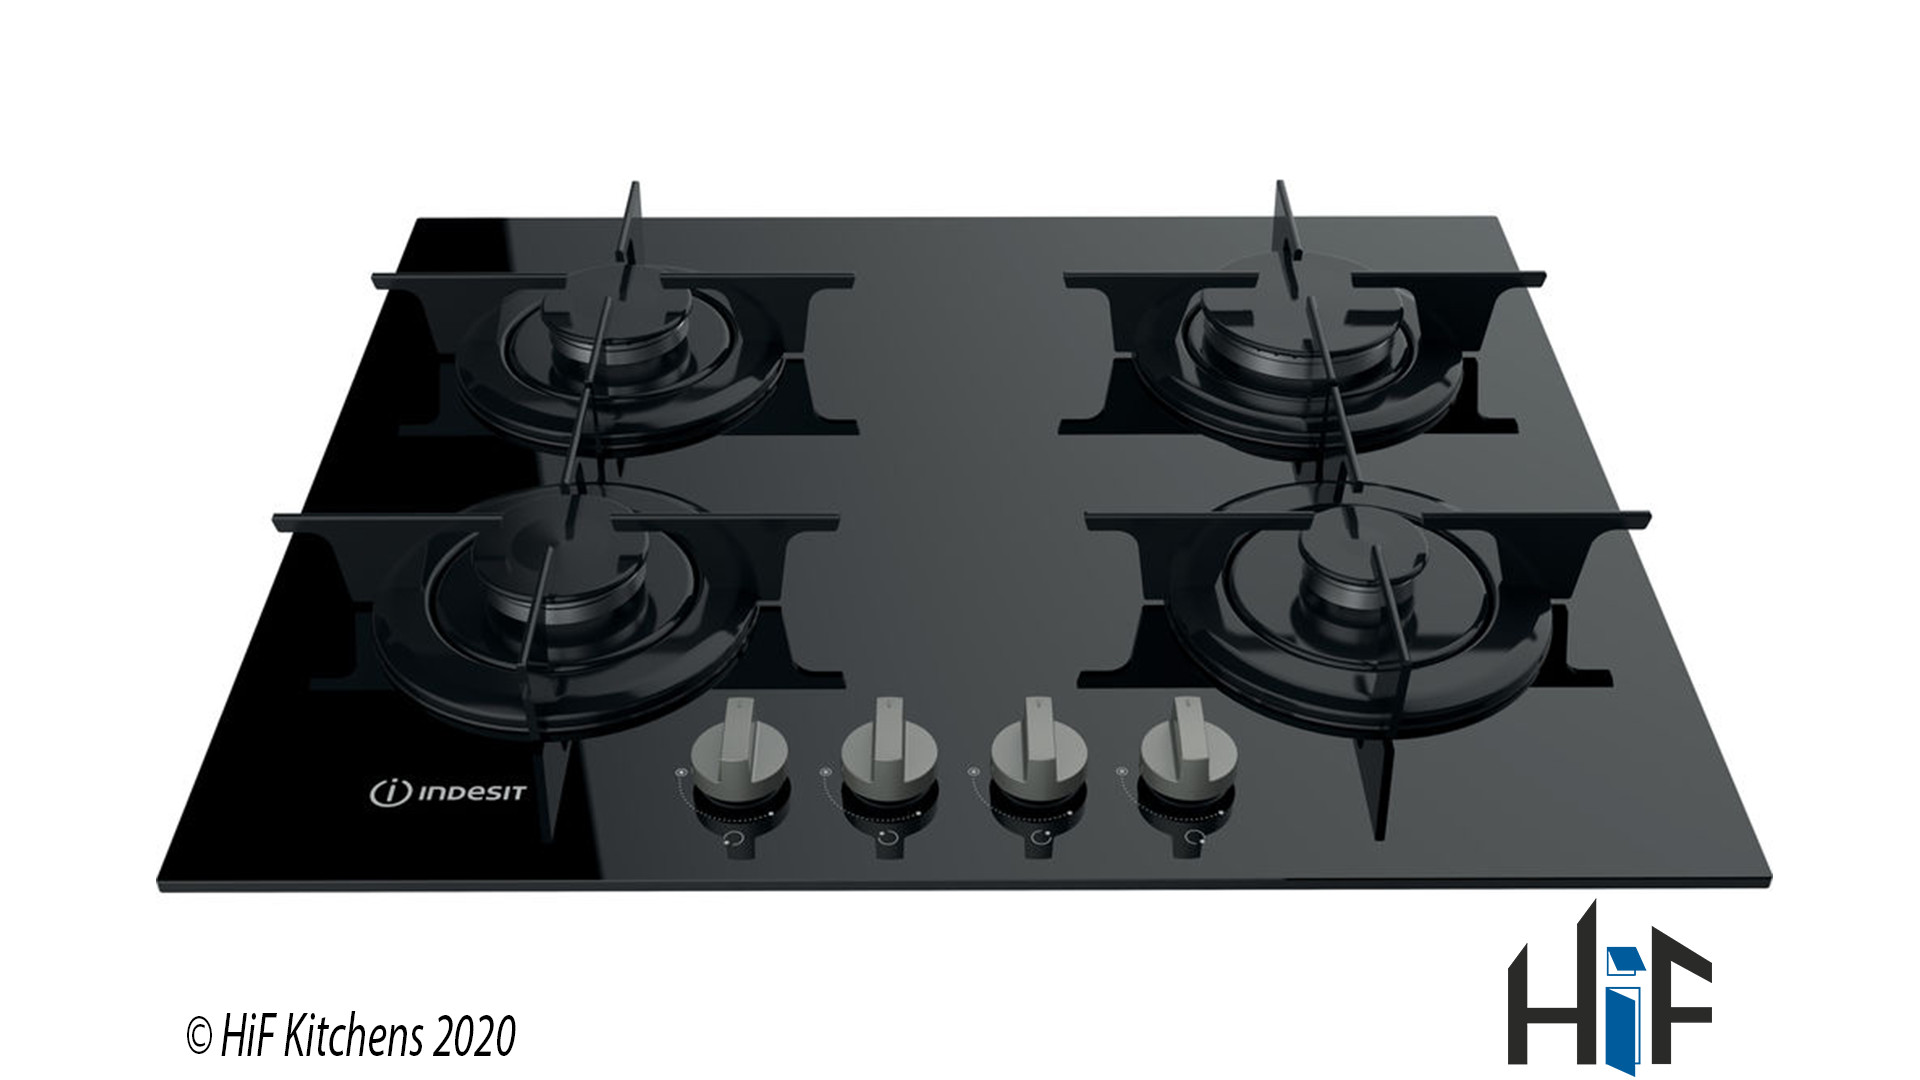 Indesit PR642IBKUK Gas on glass Hob